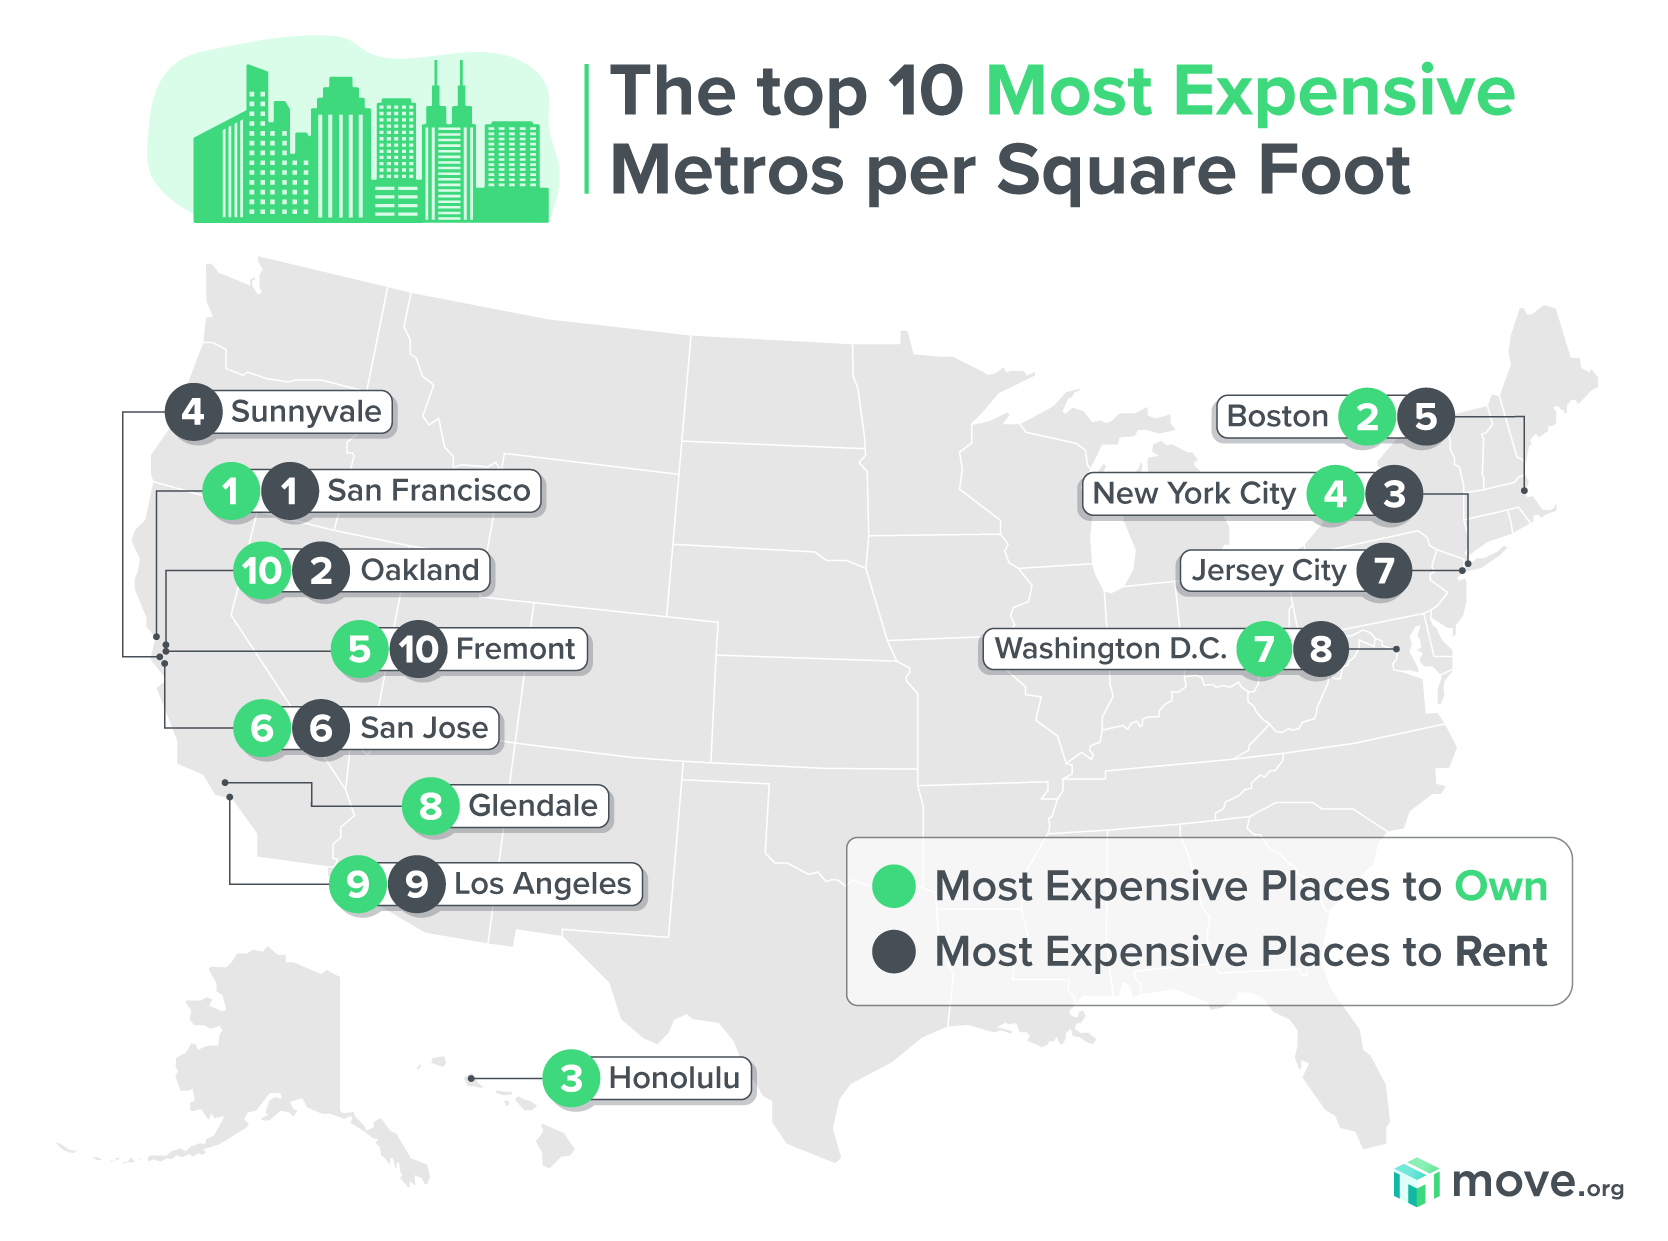 Graphic of the most expensive metros per square foot